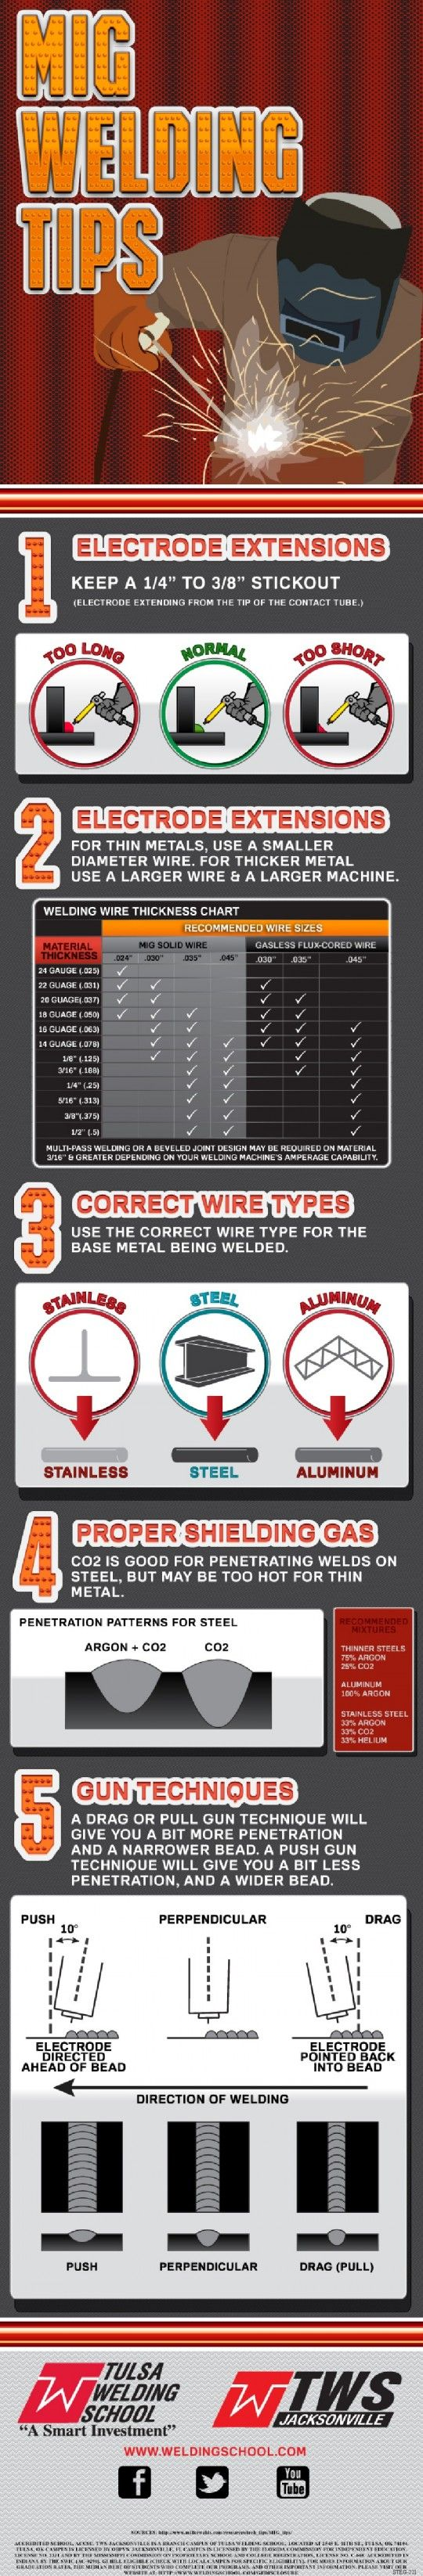 MIG welding is one of the simplest and most universally used welding ...